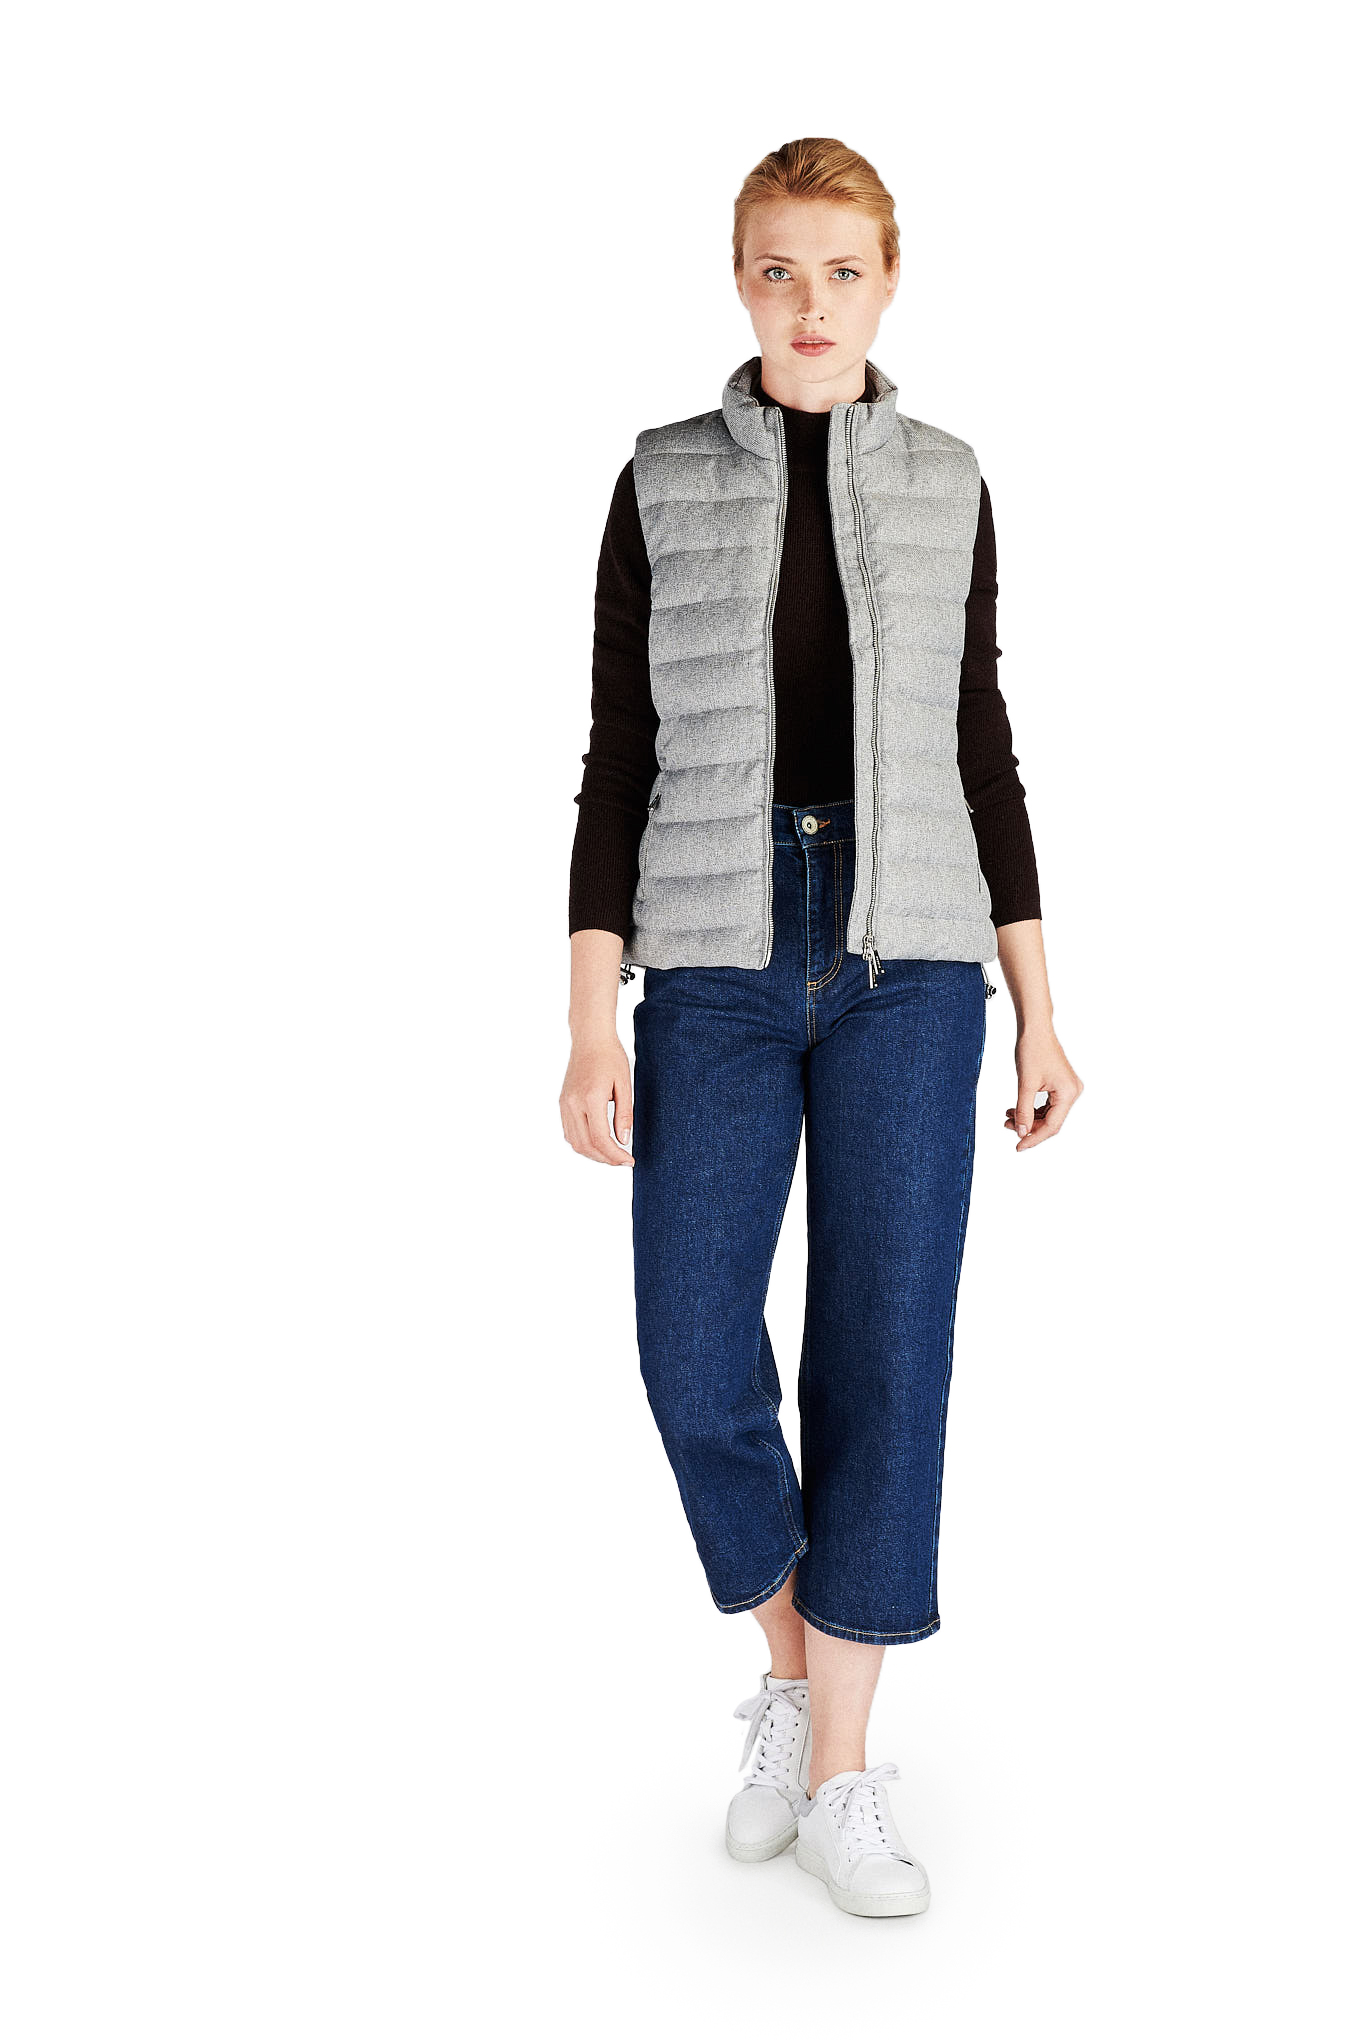 Waist Coat Mix Grey Casual Woman